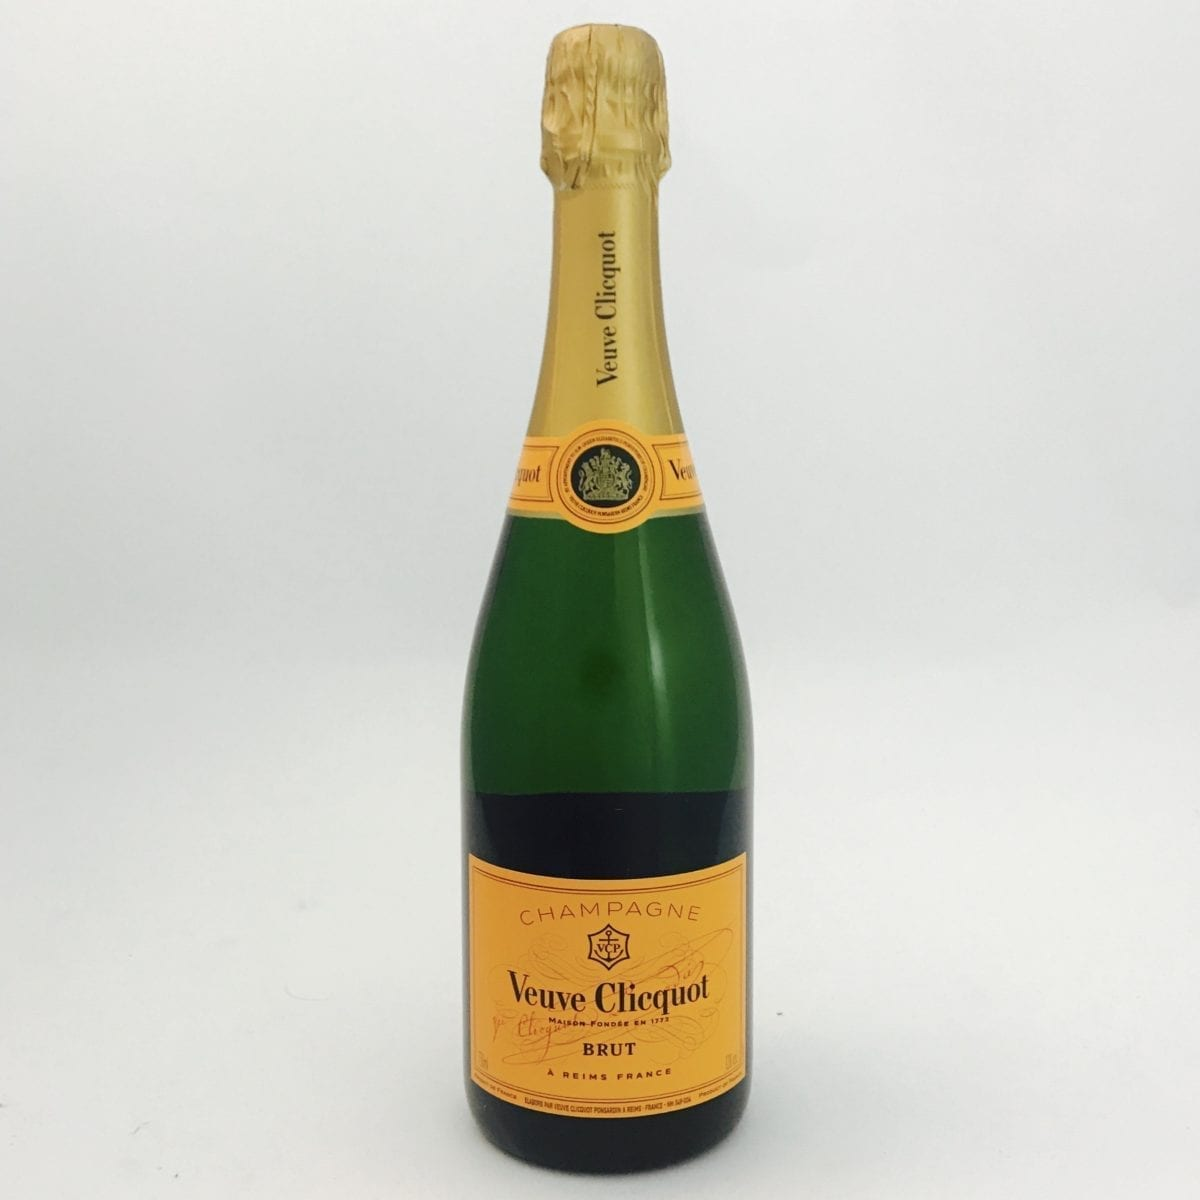 Veuve Clicquot Brut Veuve Clicquot Quotyellow Label Quot Champagne Siyps Ireland